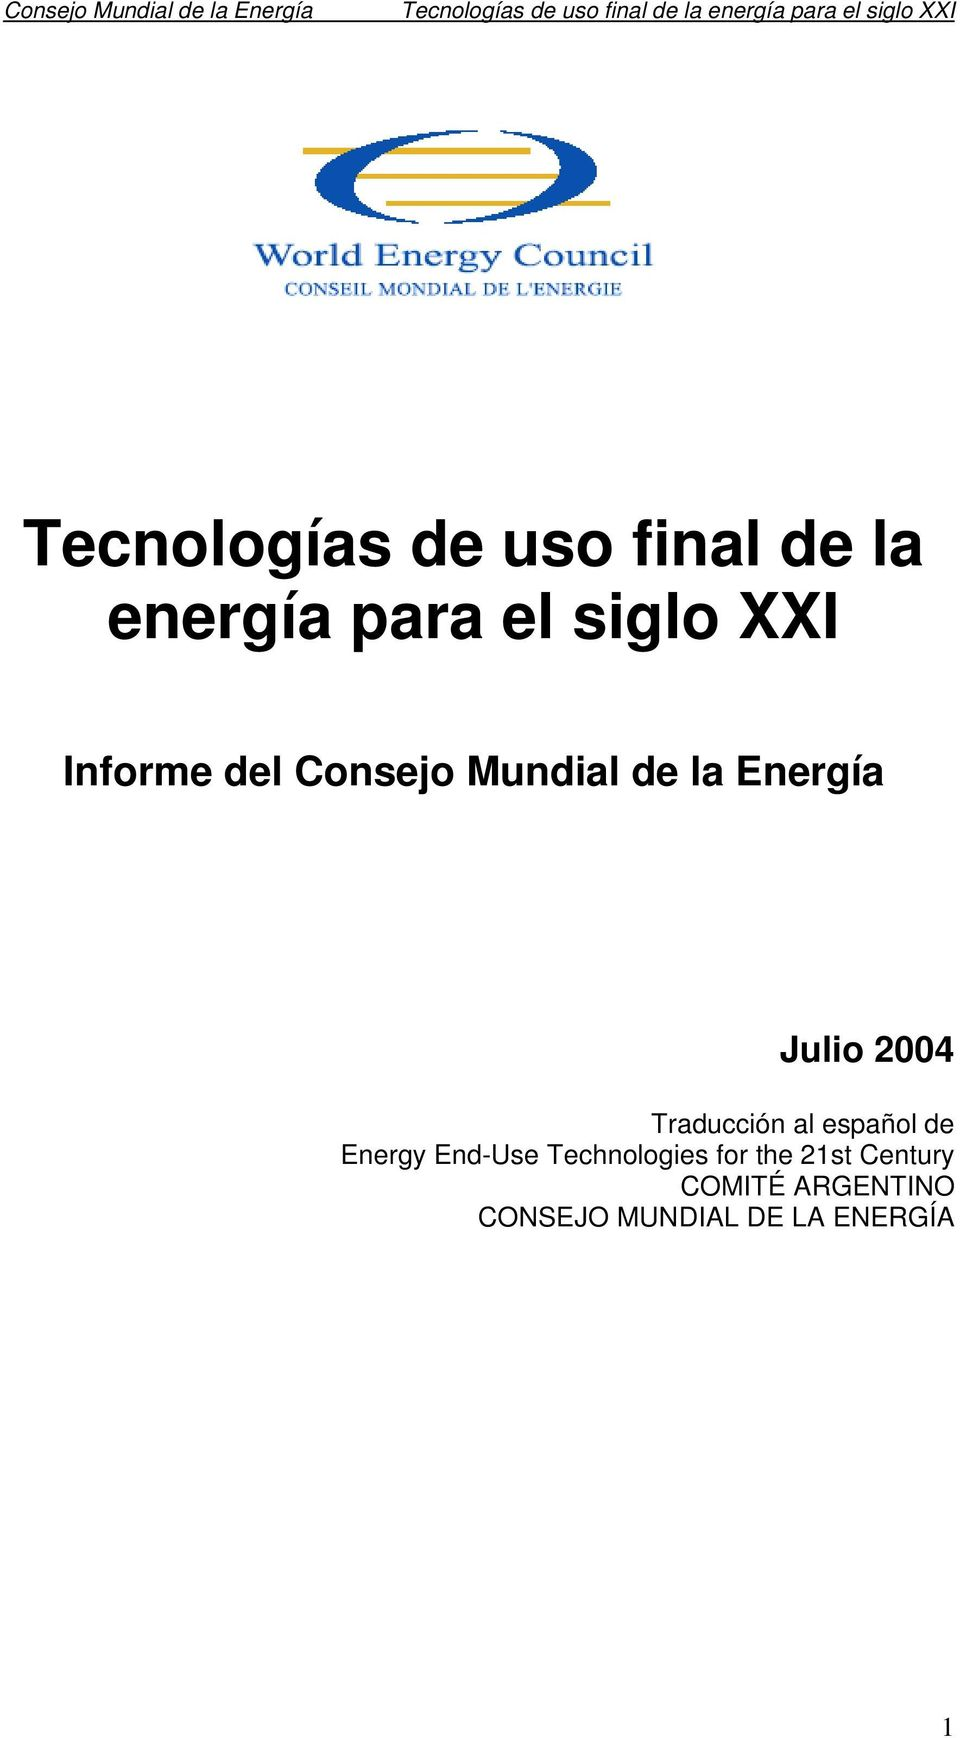 Traducción al español de Energy End-Use Technologies for